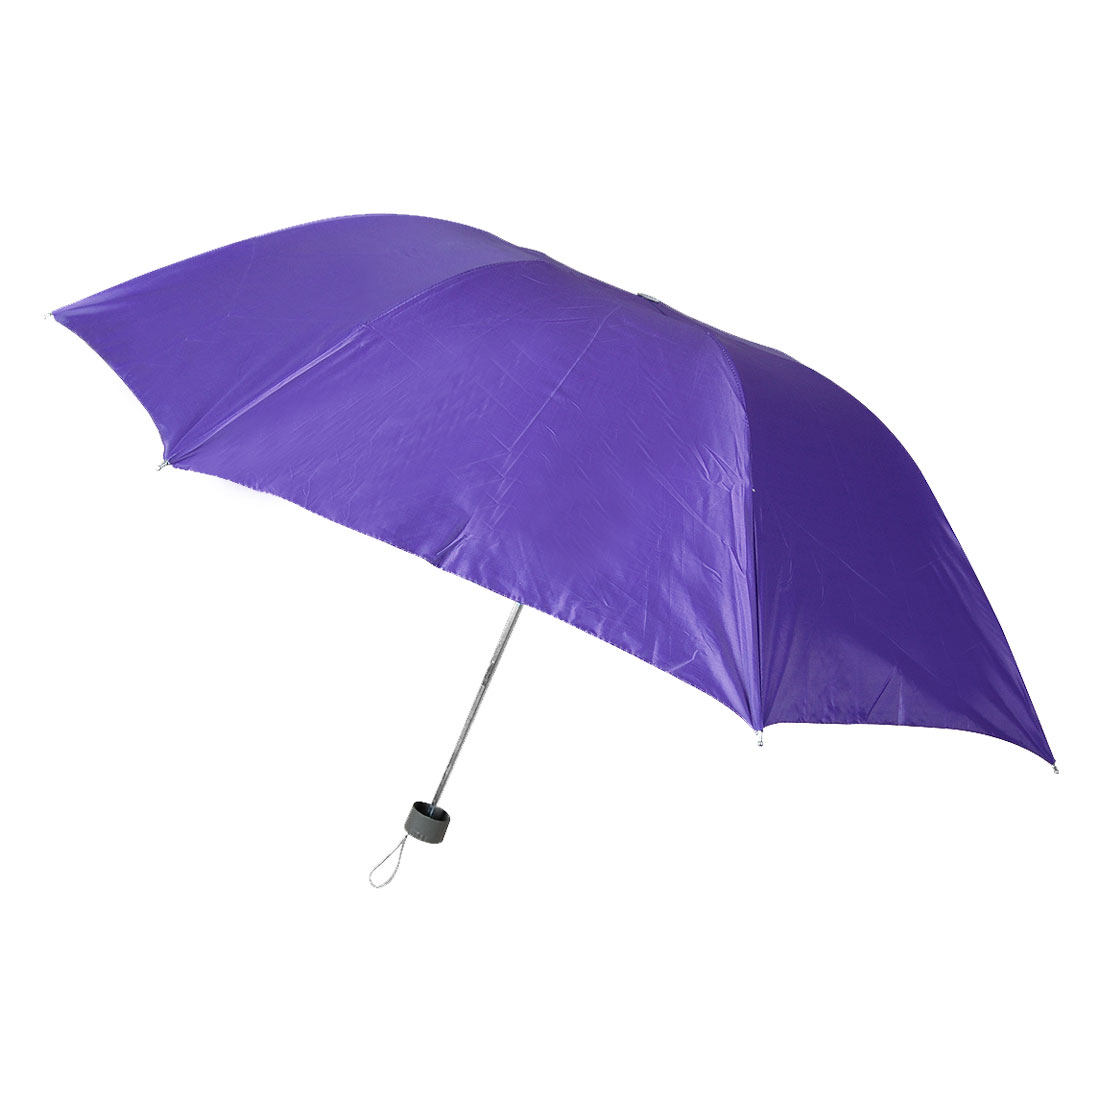 Plastic Handle Water Resistant Fabric 3 Layer Folding Shaft Purple Rain Umbrella